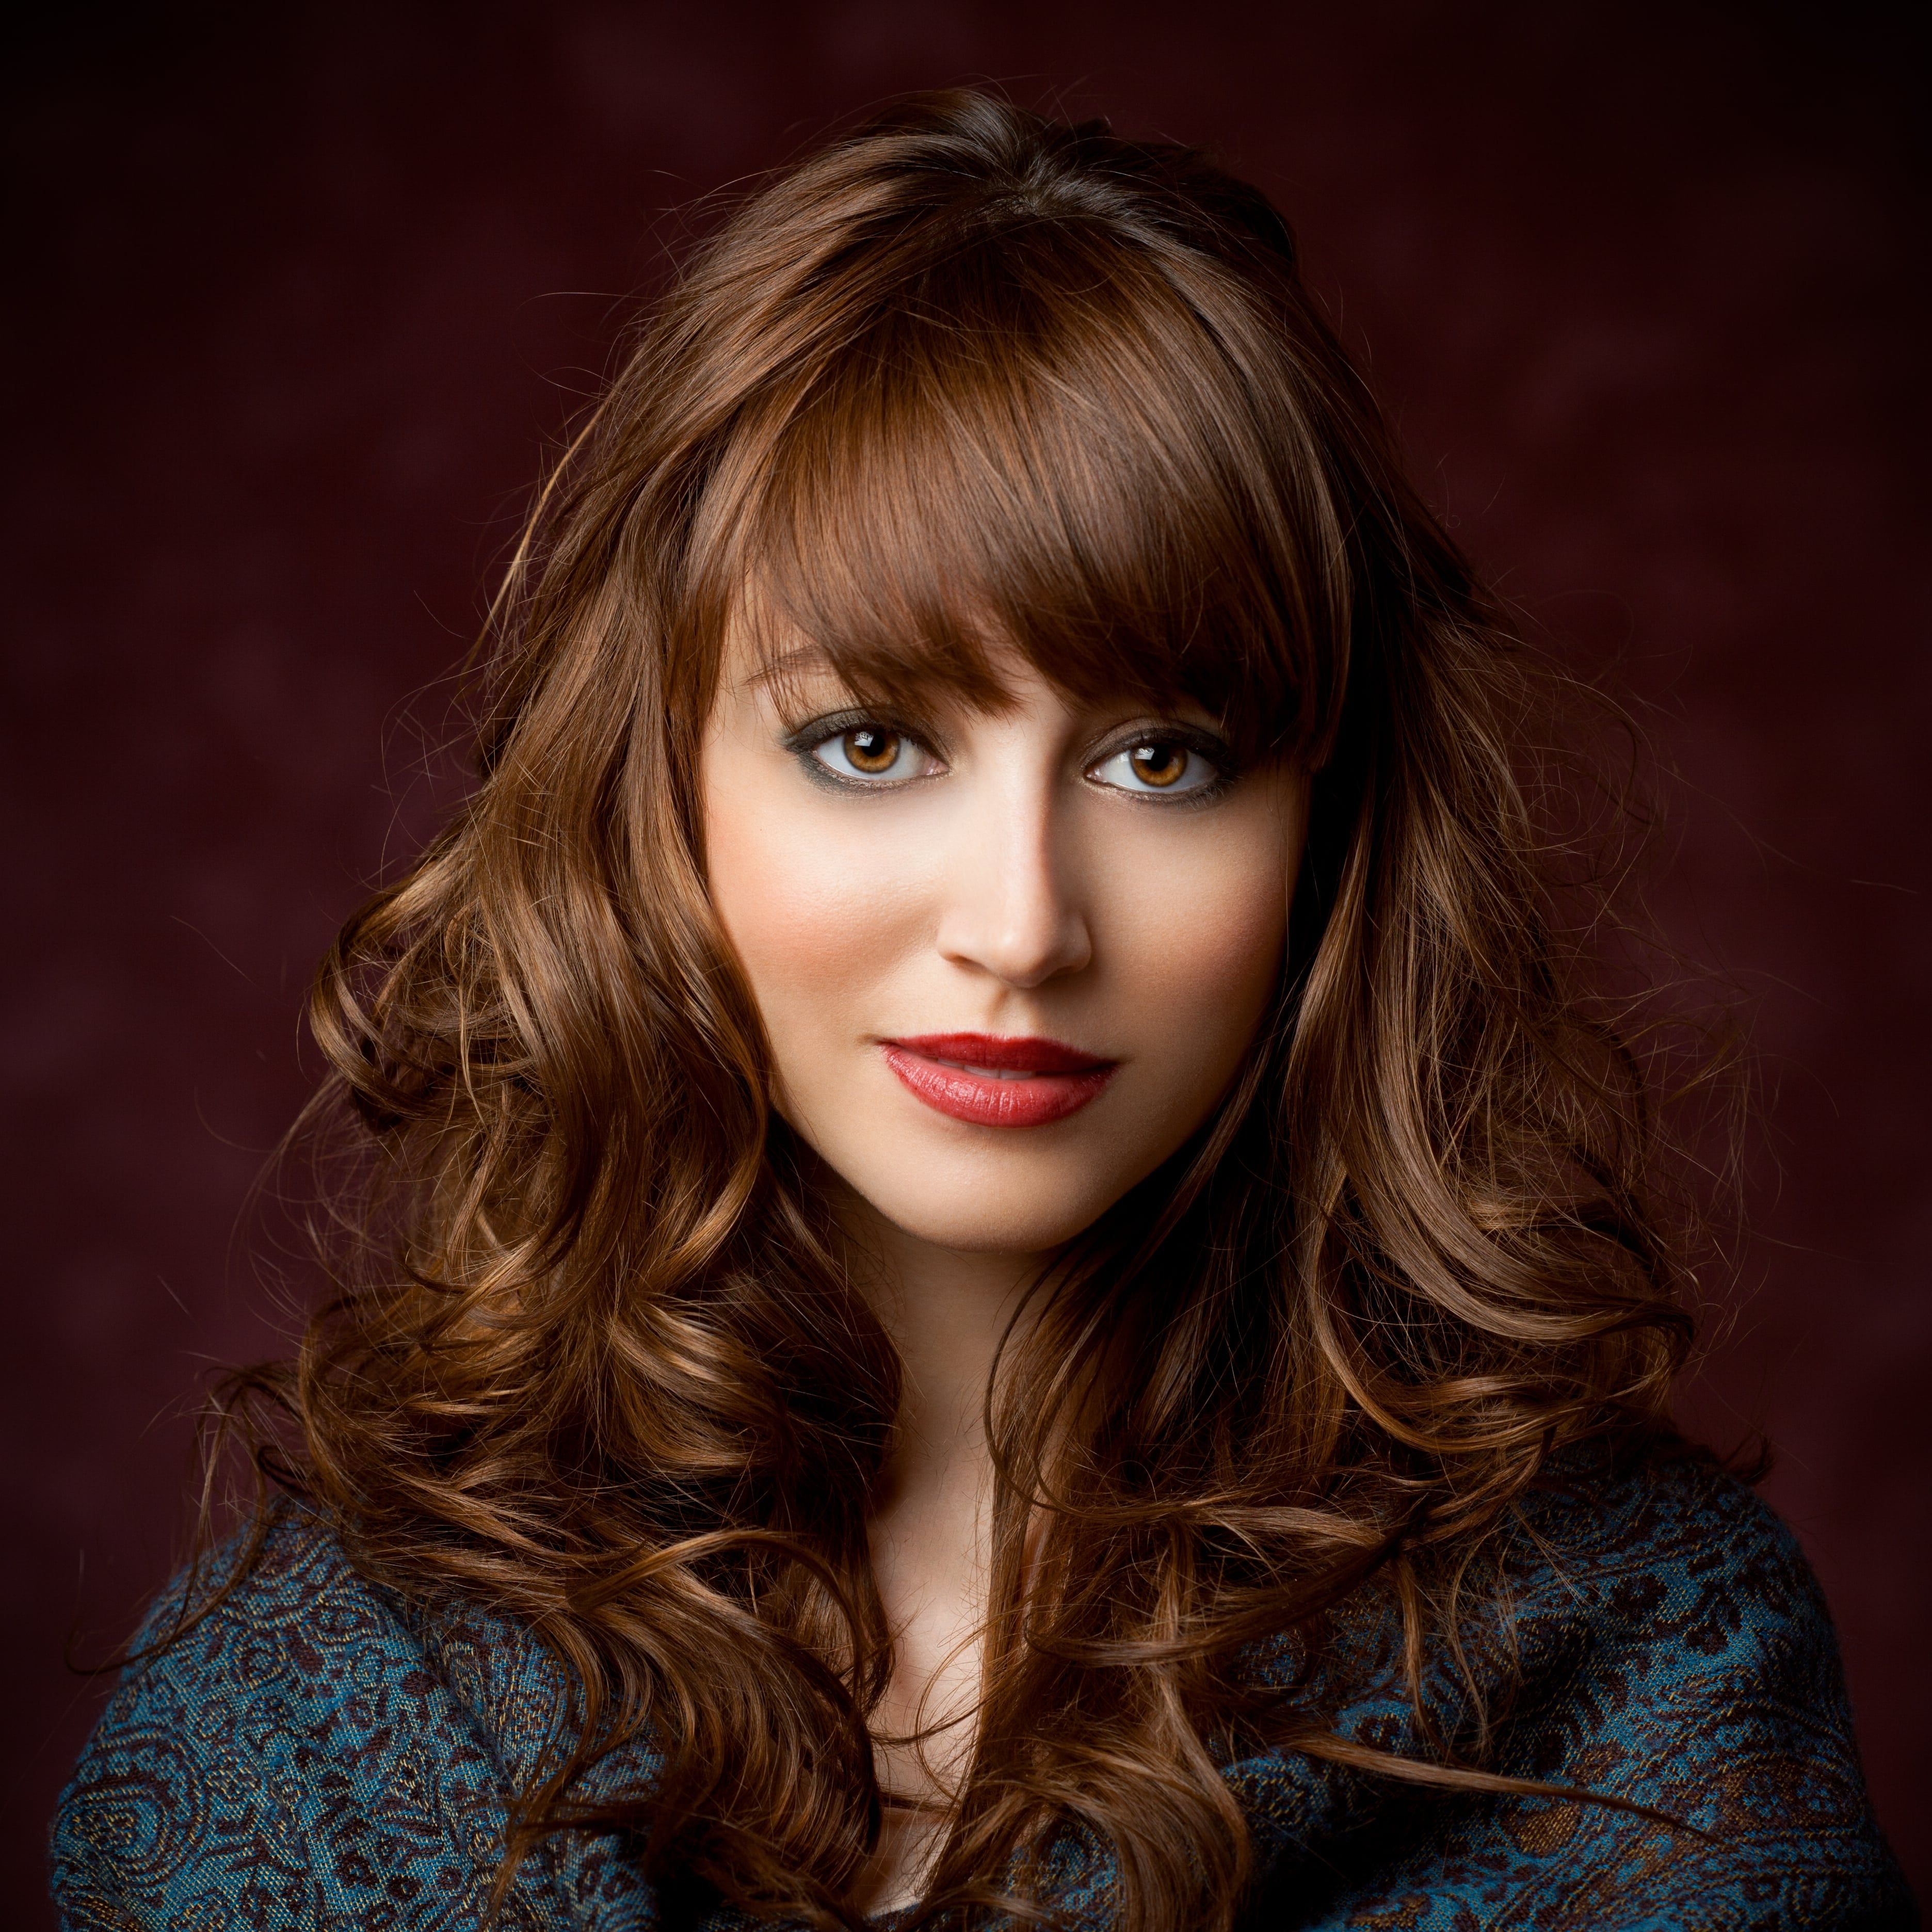 Preferred Long Hairstyles With Straight Fringes And Wavy Ends With Curly Hair Bangs: 9 Trendy Hairstyle Ideas And Styling Tips (View 15 of 20)